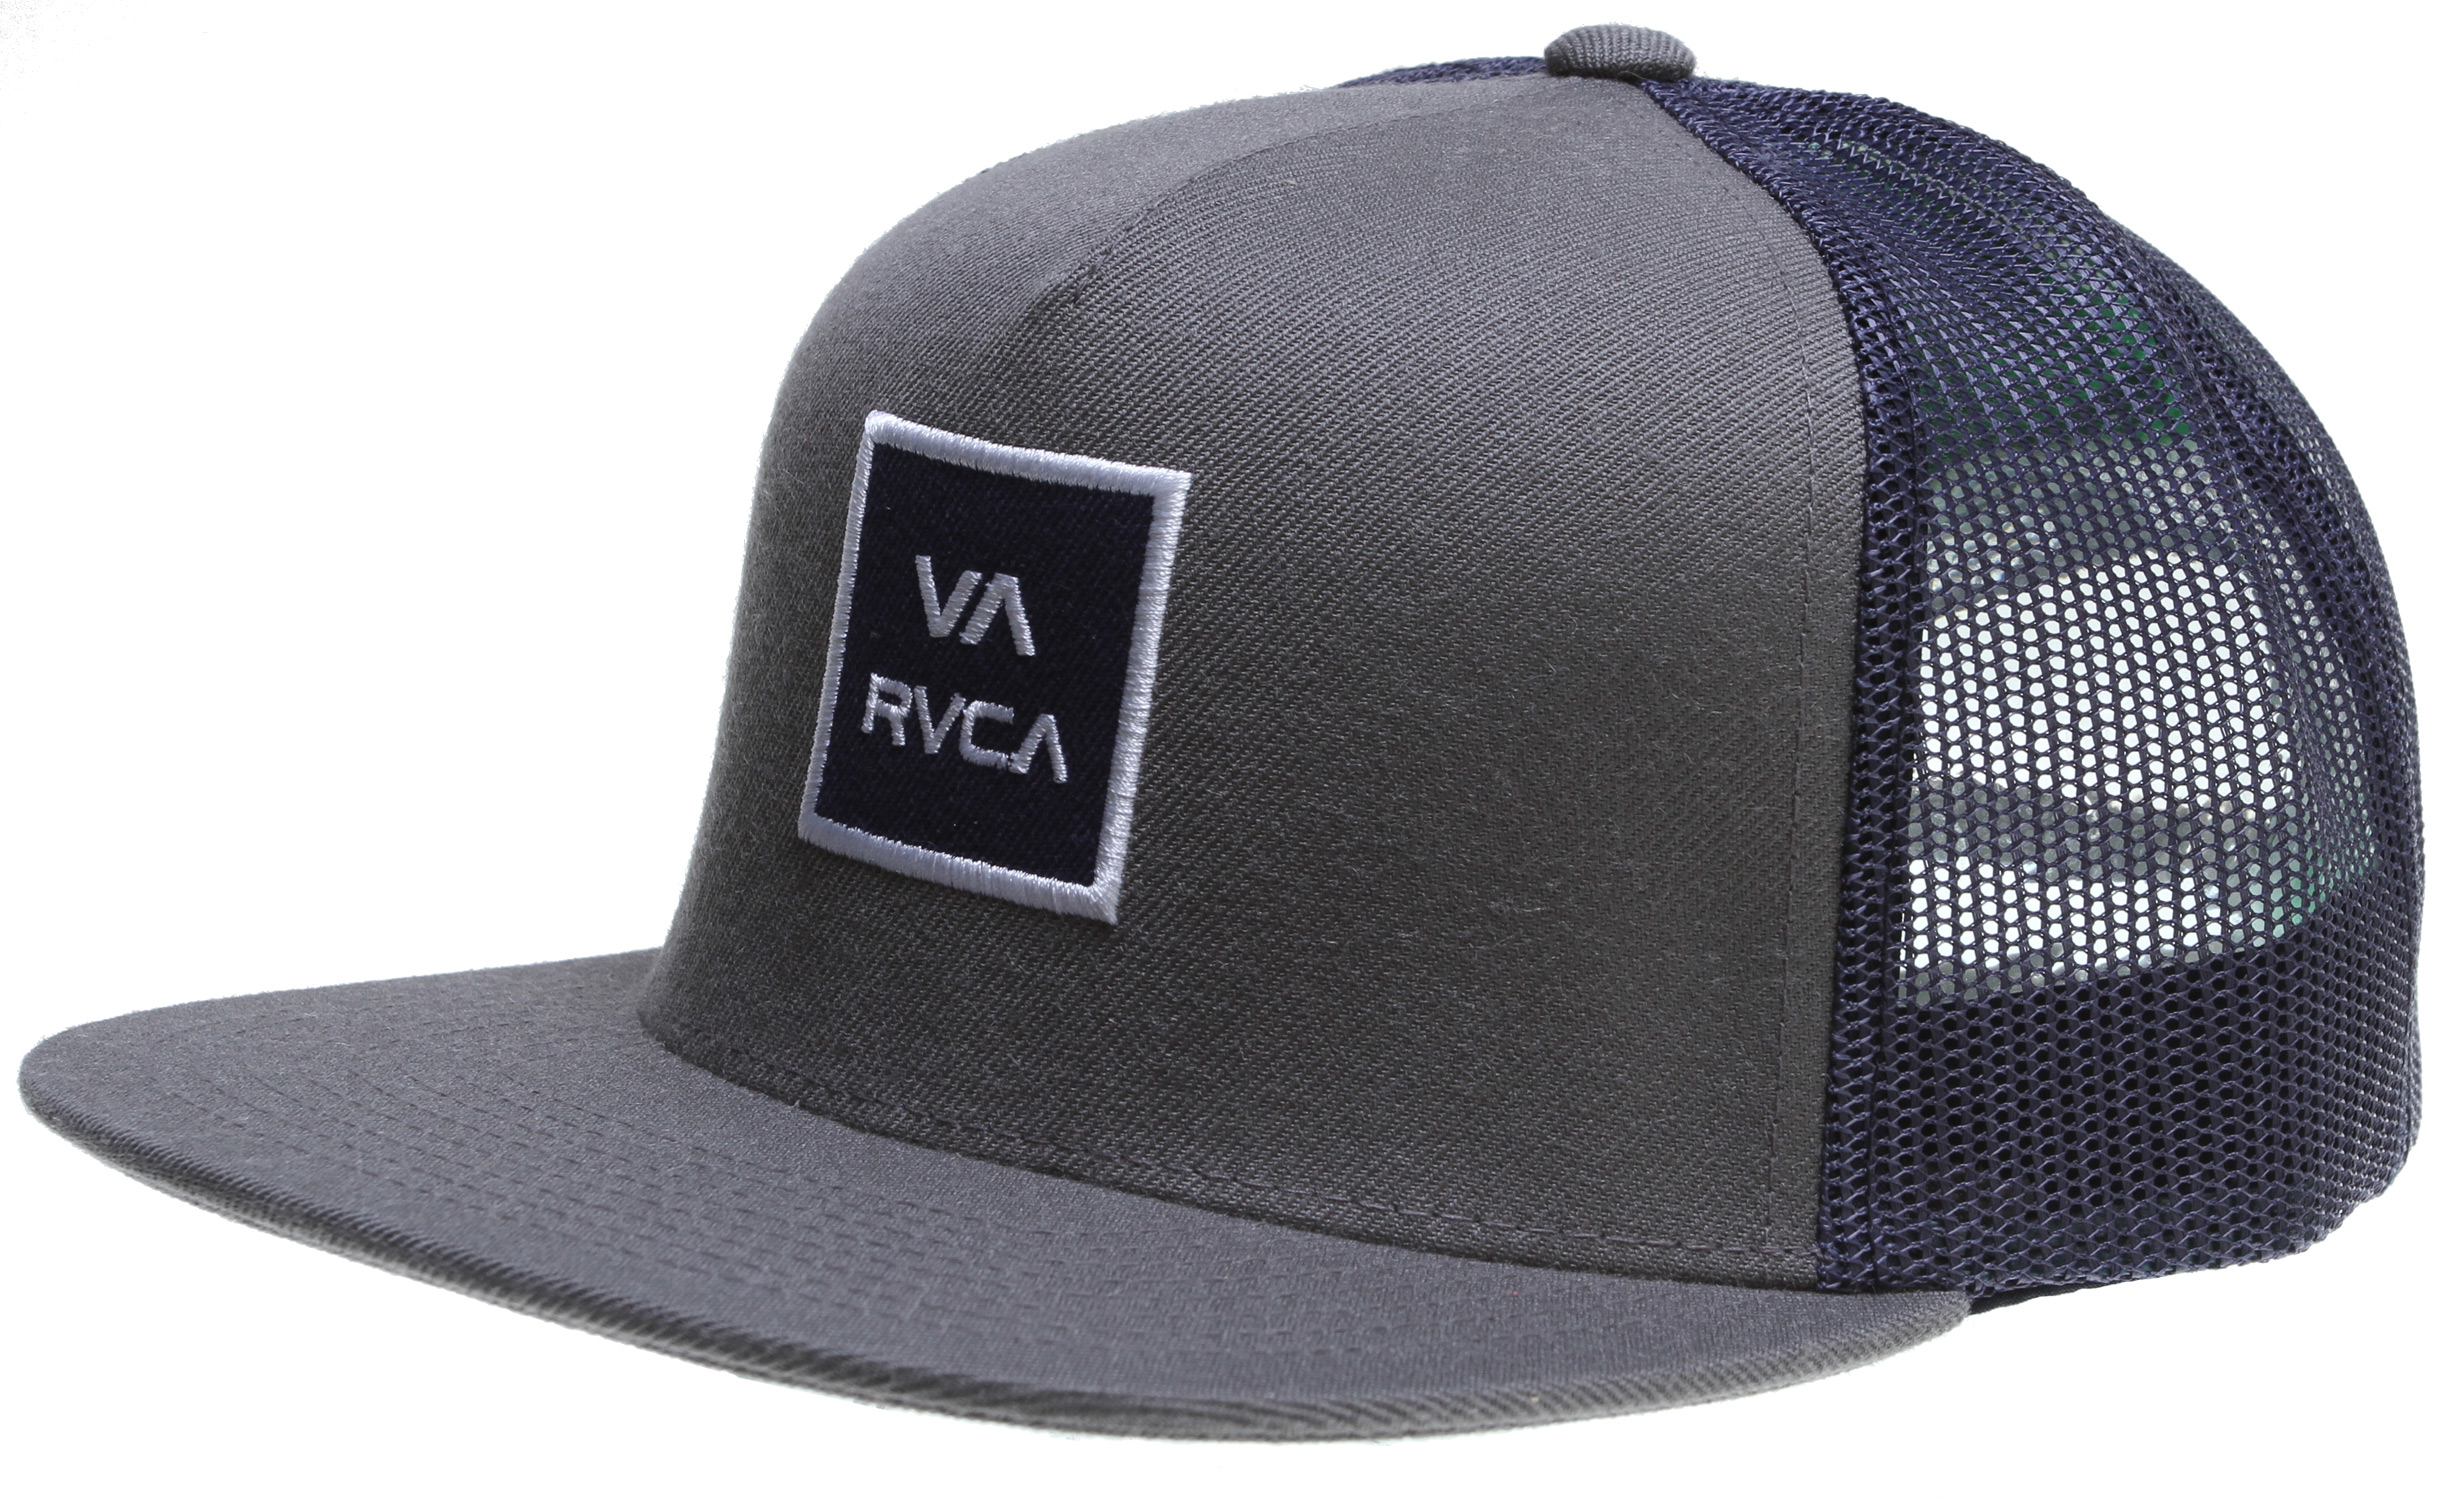 Key Features of the RVCA VA All The Way Trucker Cap: 80% Acrylic/20% Wool with 100% Nylon mesh 5–panel trucker hat VA stacked logo patch at front - $24.00